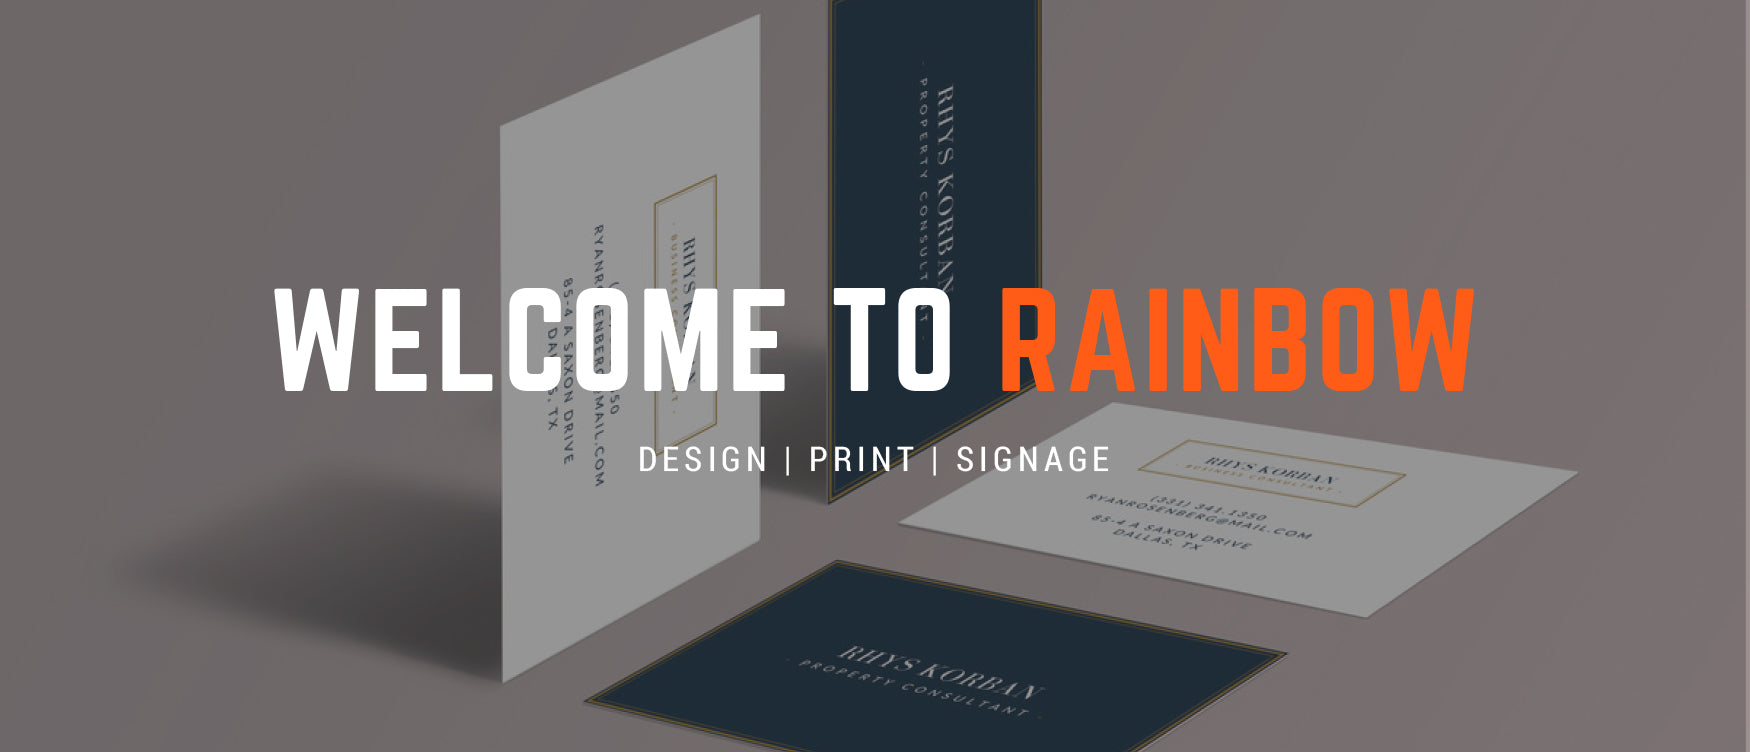 Rainbow print design print signage your local print shop 1 2 3 reheart Images